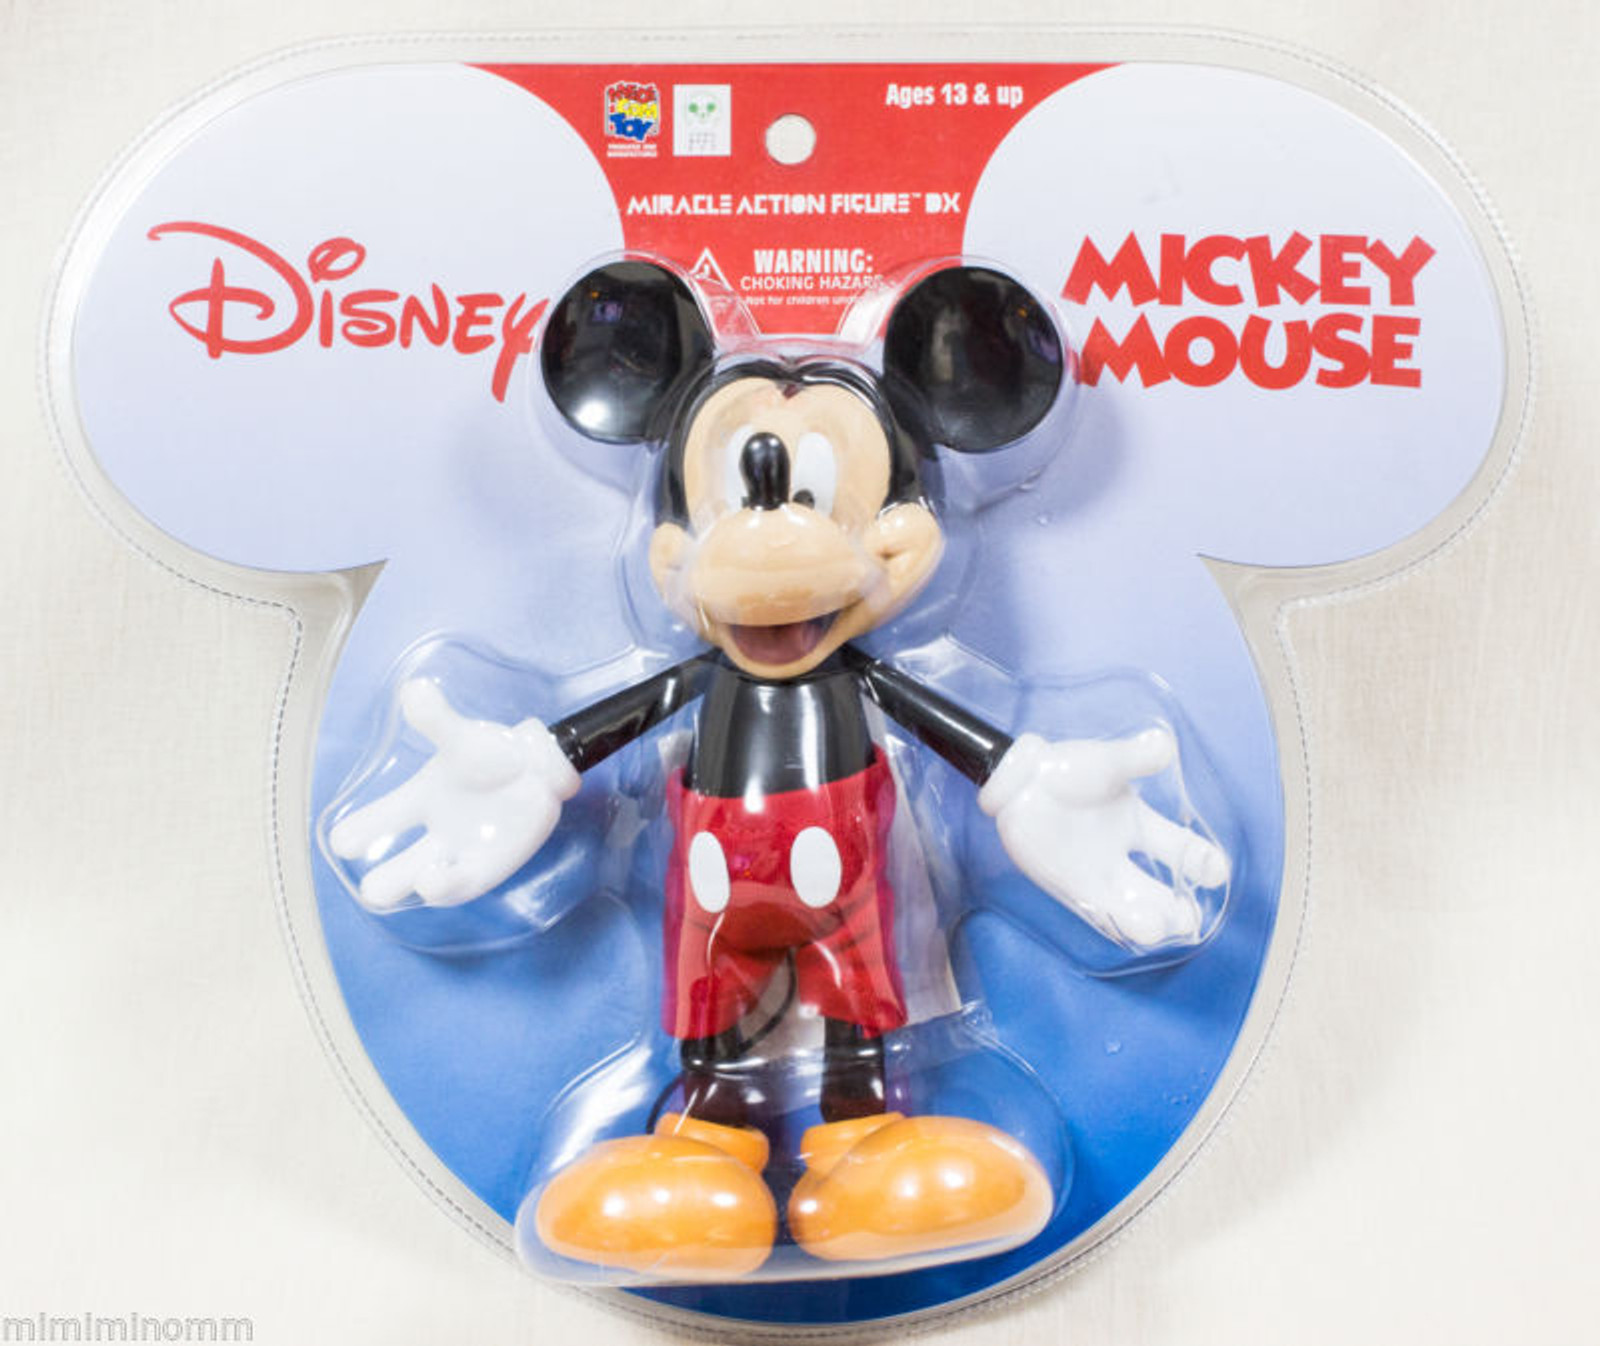 Disney Mickey Mouse Miracle Action Figure DX Medicom Toy JAPAN ANIME